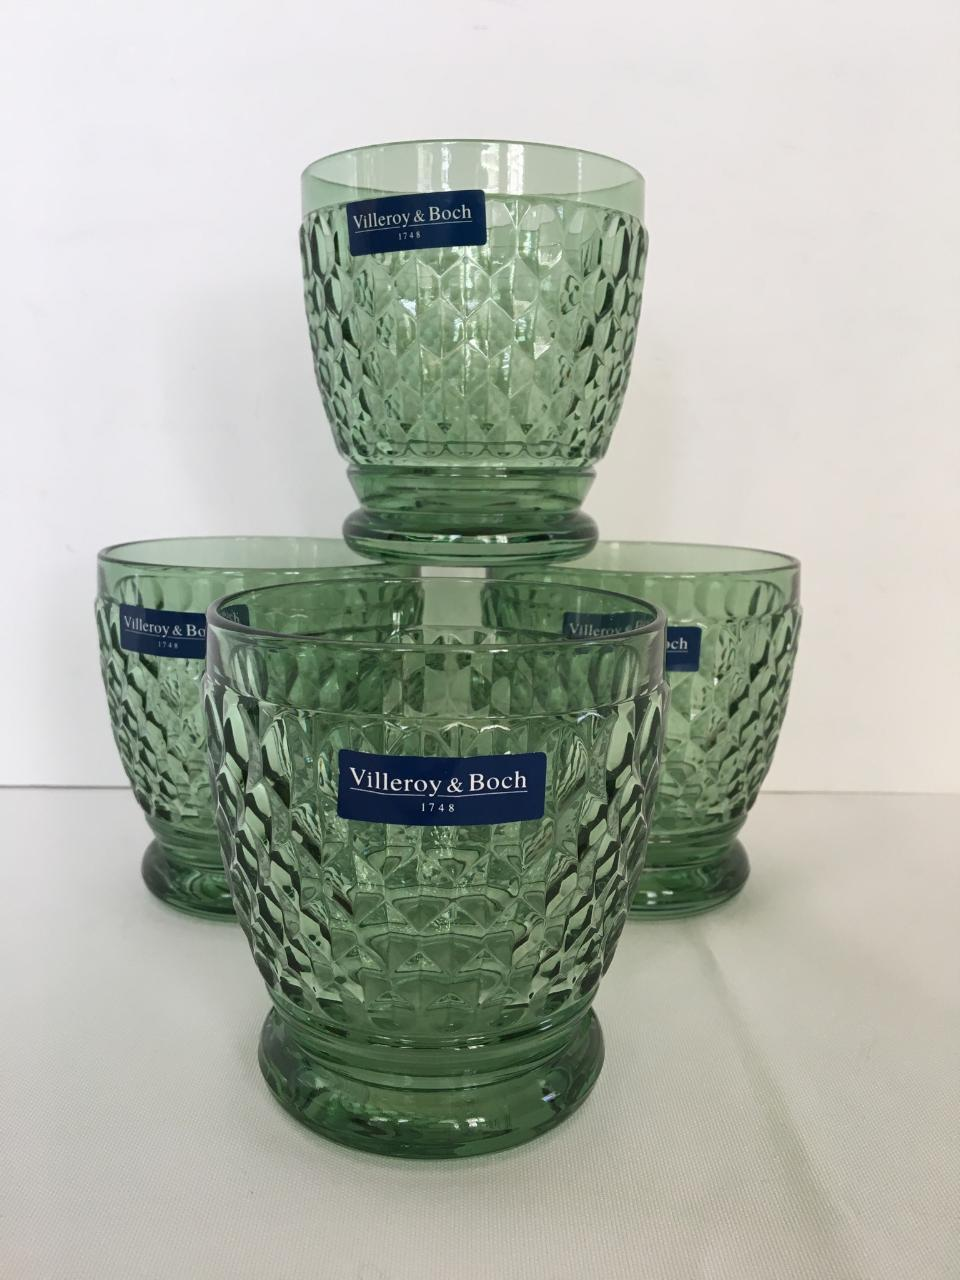 4 Villeroy & Boch Tasse  Tumbler  Double Old Fashioned chopes NEW IN BOX